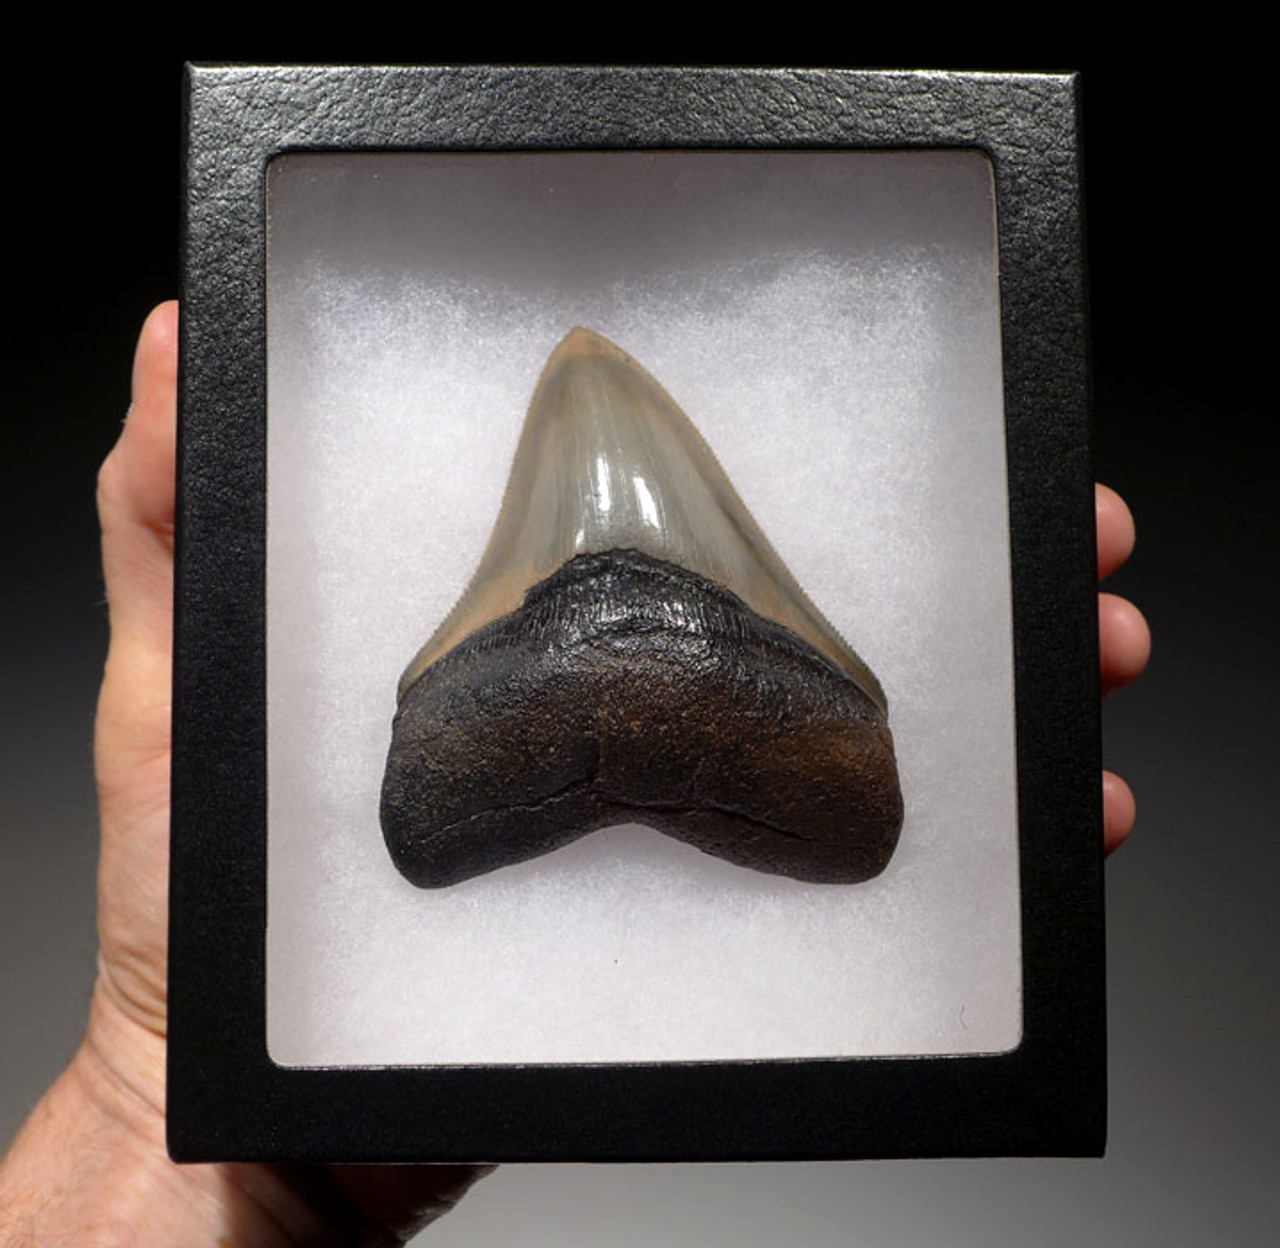 SH6-325 - FINEST GRADE 3.8 INCH MEGALODON SHARK TOOTH WITH STUNNING PRESERVATION